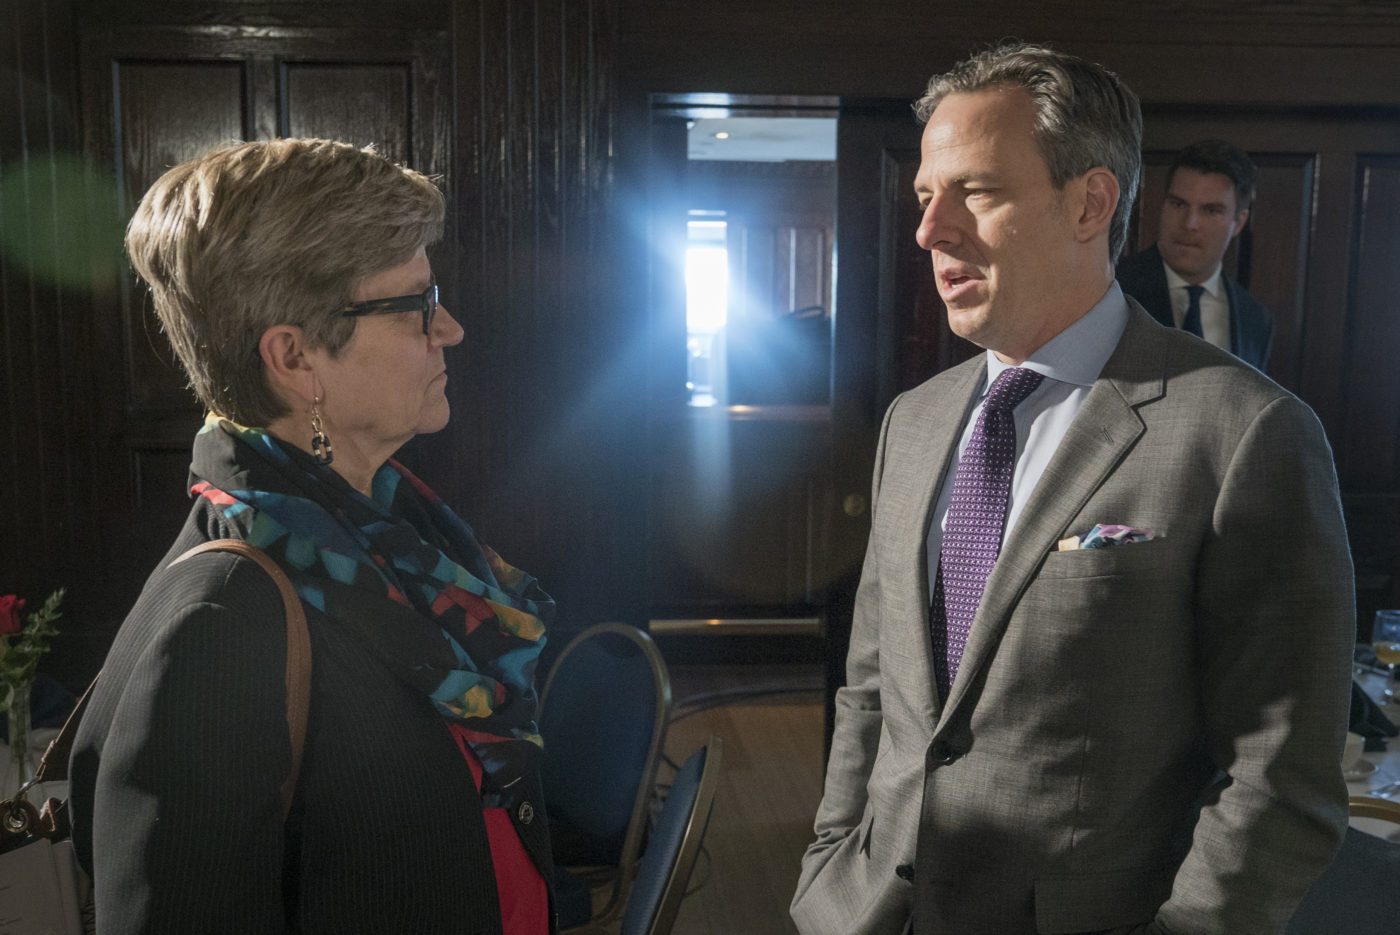 Annenberg Public Policy Center director Kathleen Hall Jamieson and CNN's Jake Tapper.